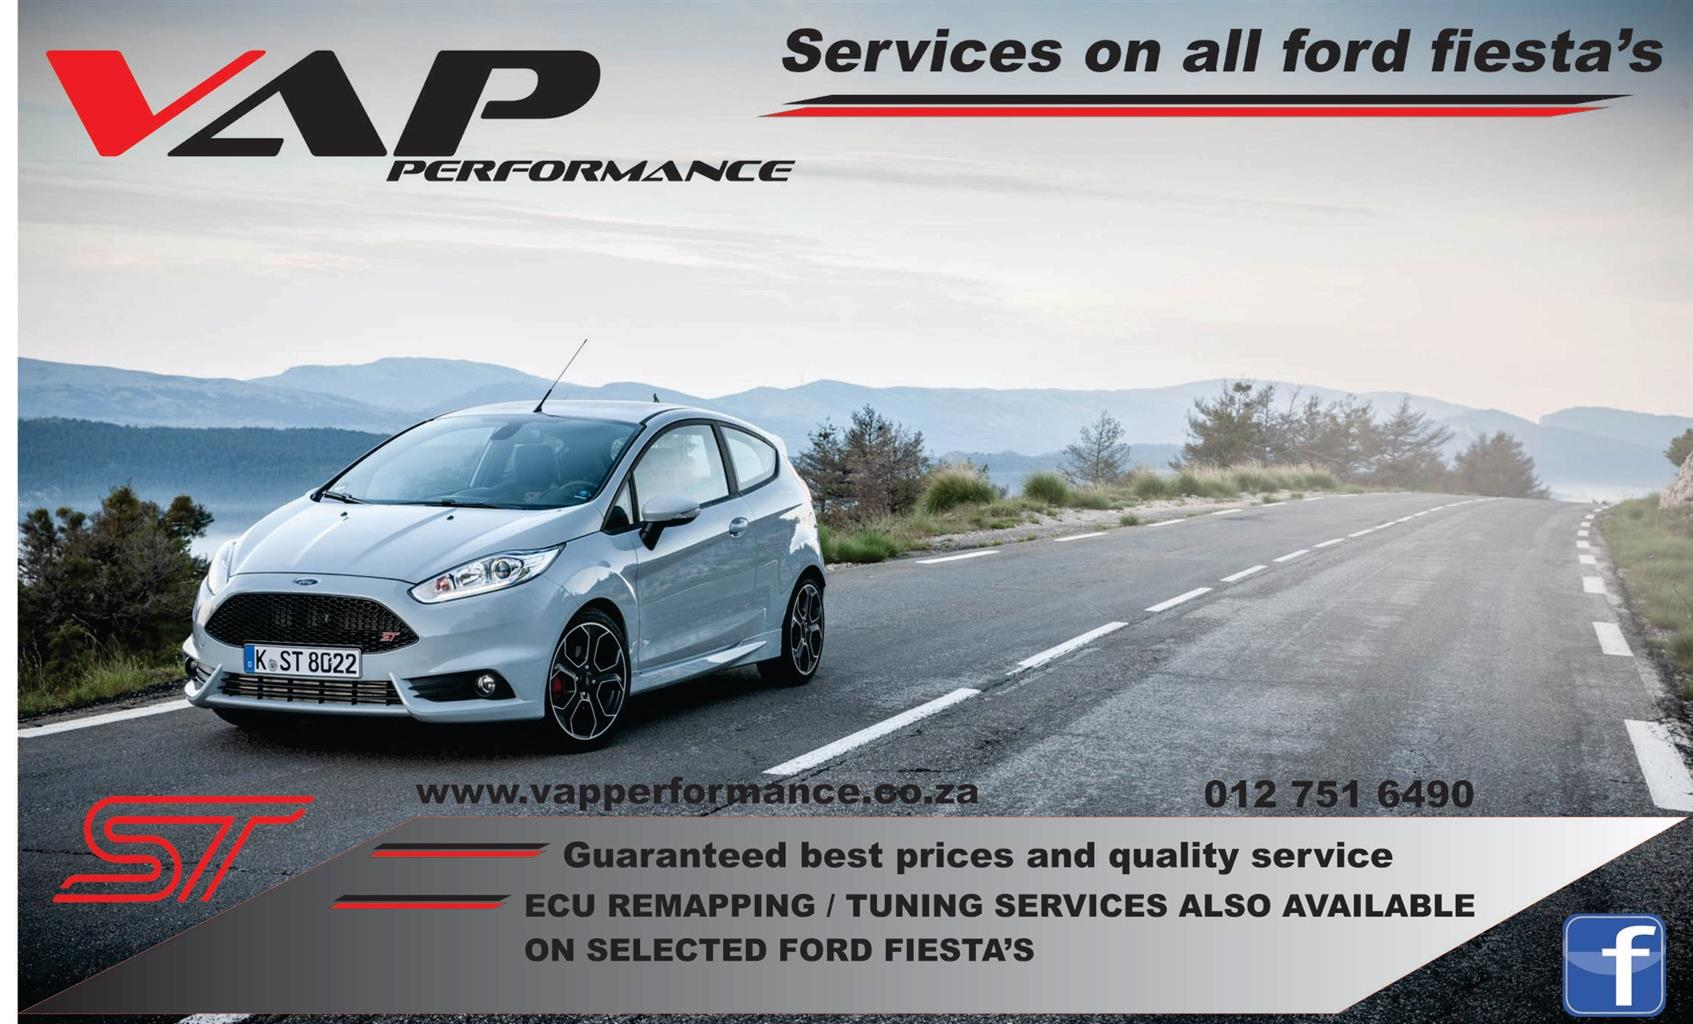 Ford Fiesta Services